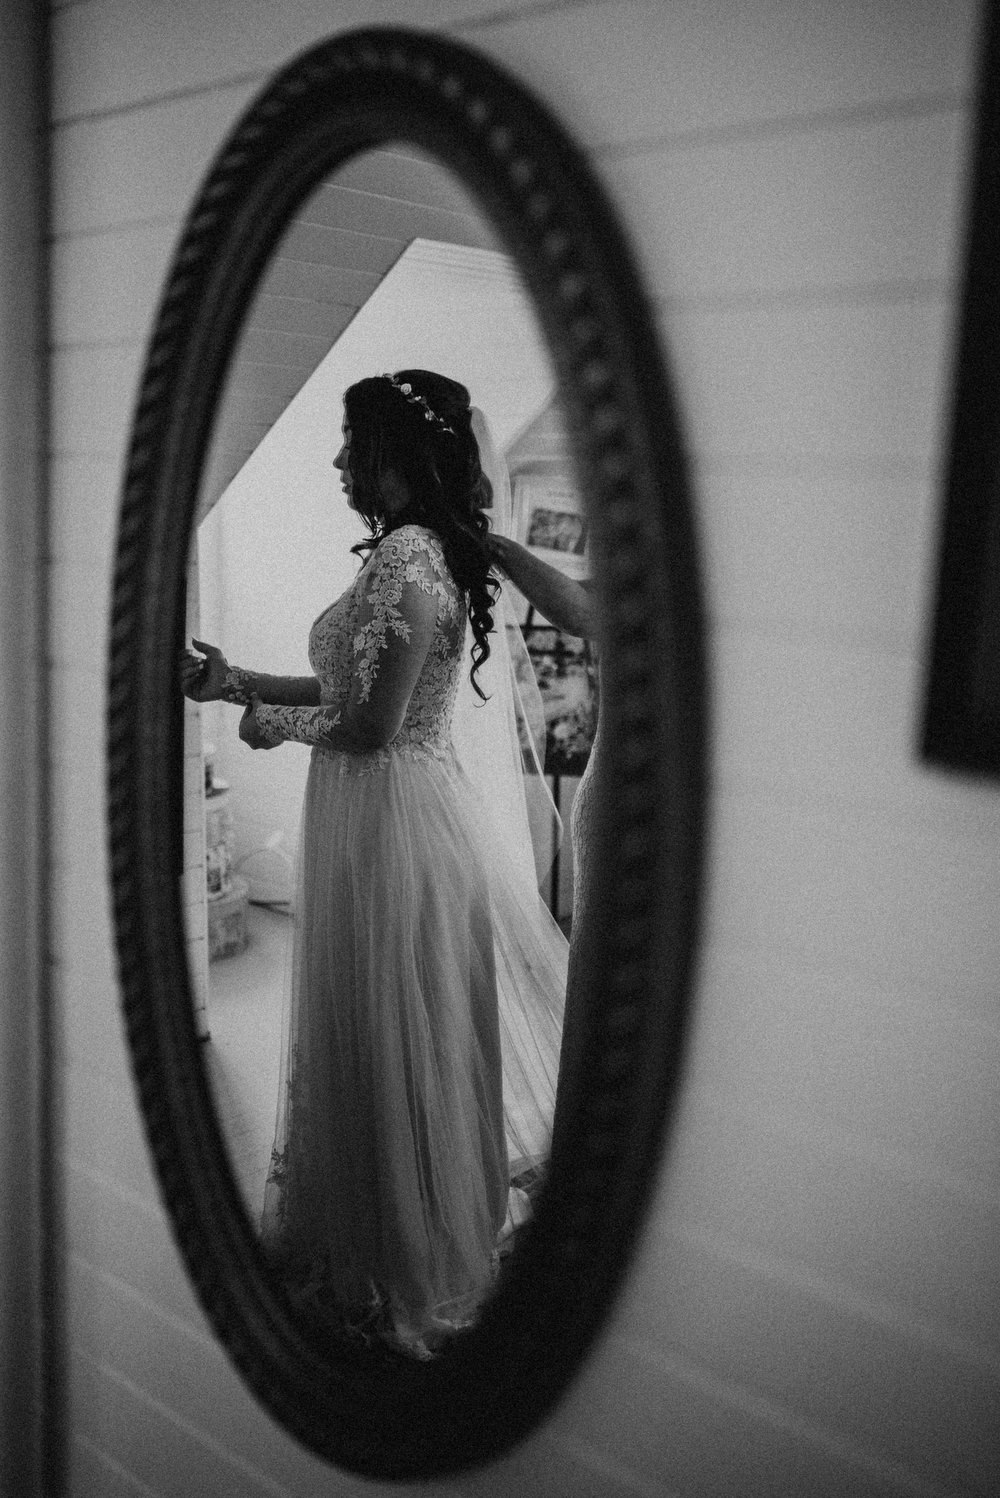 VanessaAlvesPhotography_AtlantaWeddingPhotographers_RockportMAWedding_BostonWeddingPhotographers_CarnivalThemedWedding_34.jpg